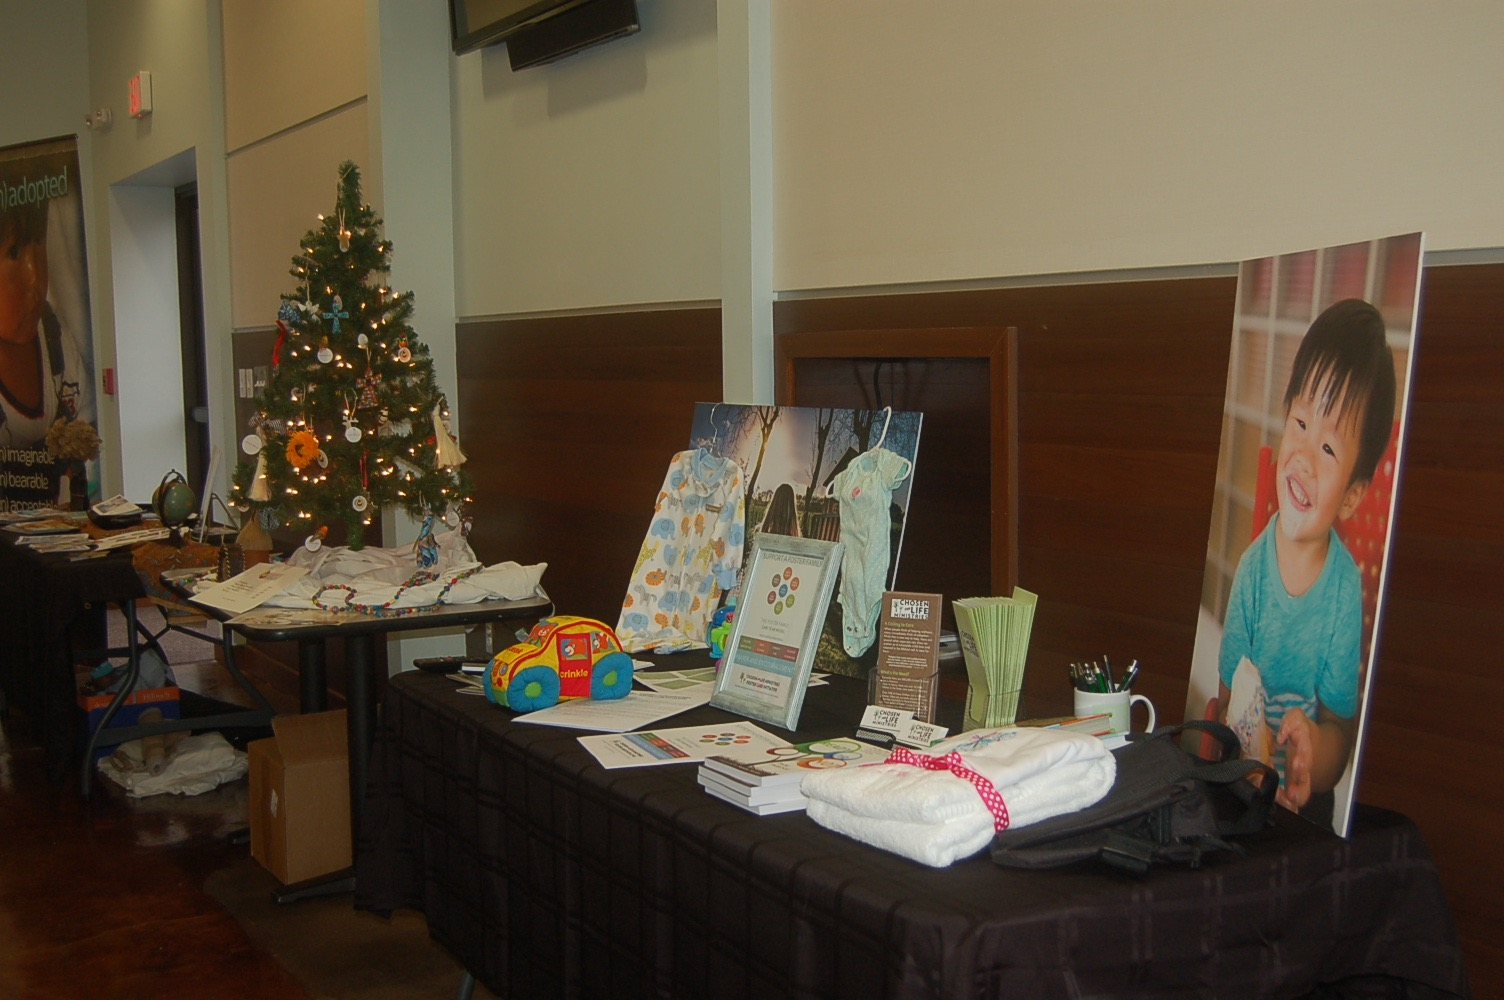 Pictured above are the Chosen for Life and Ornaments for Orphans tables.